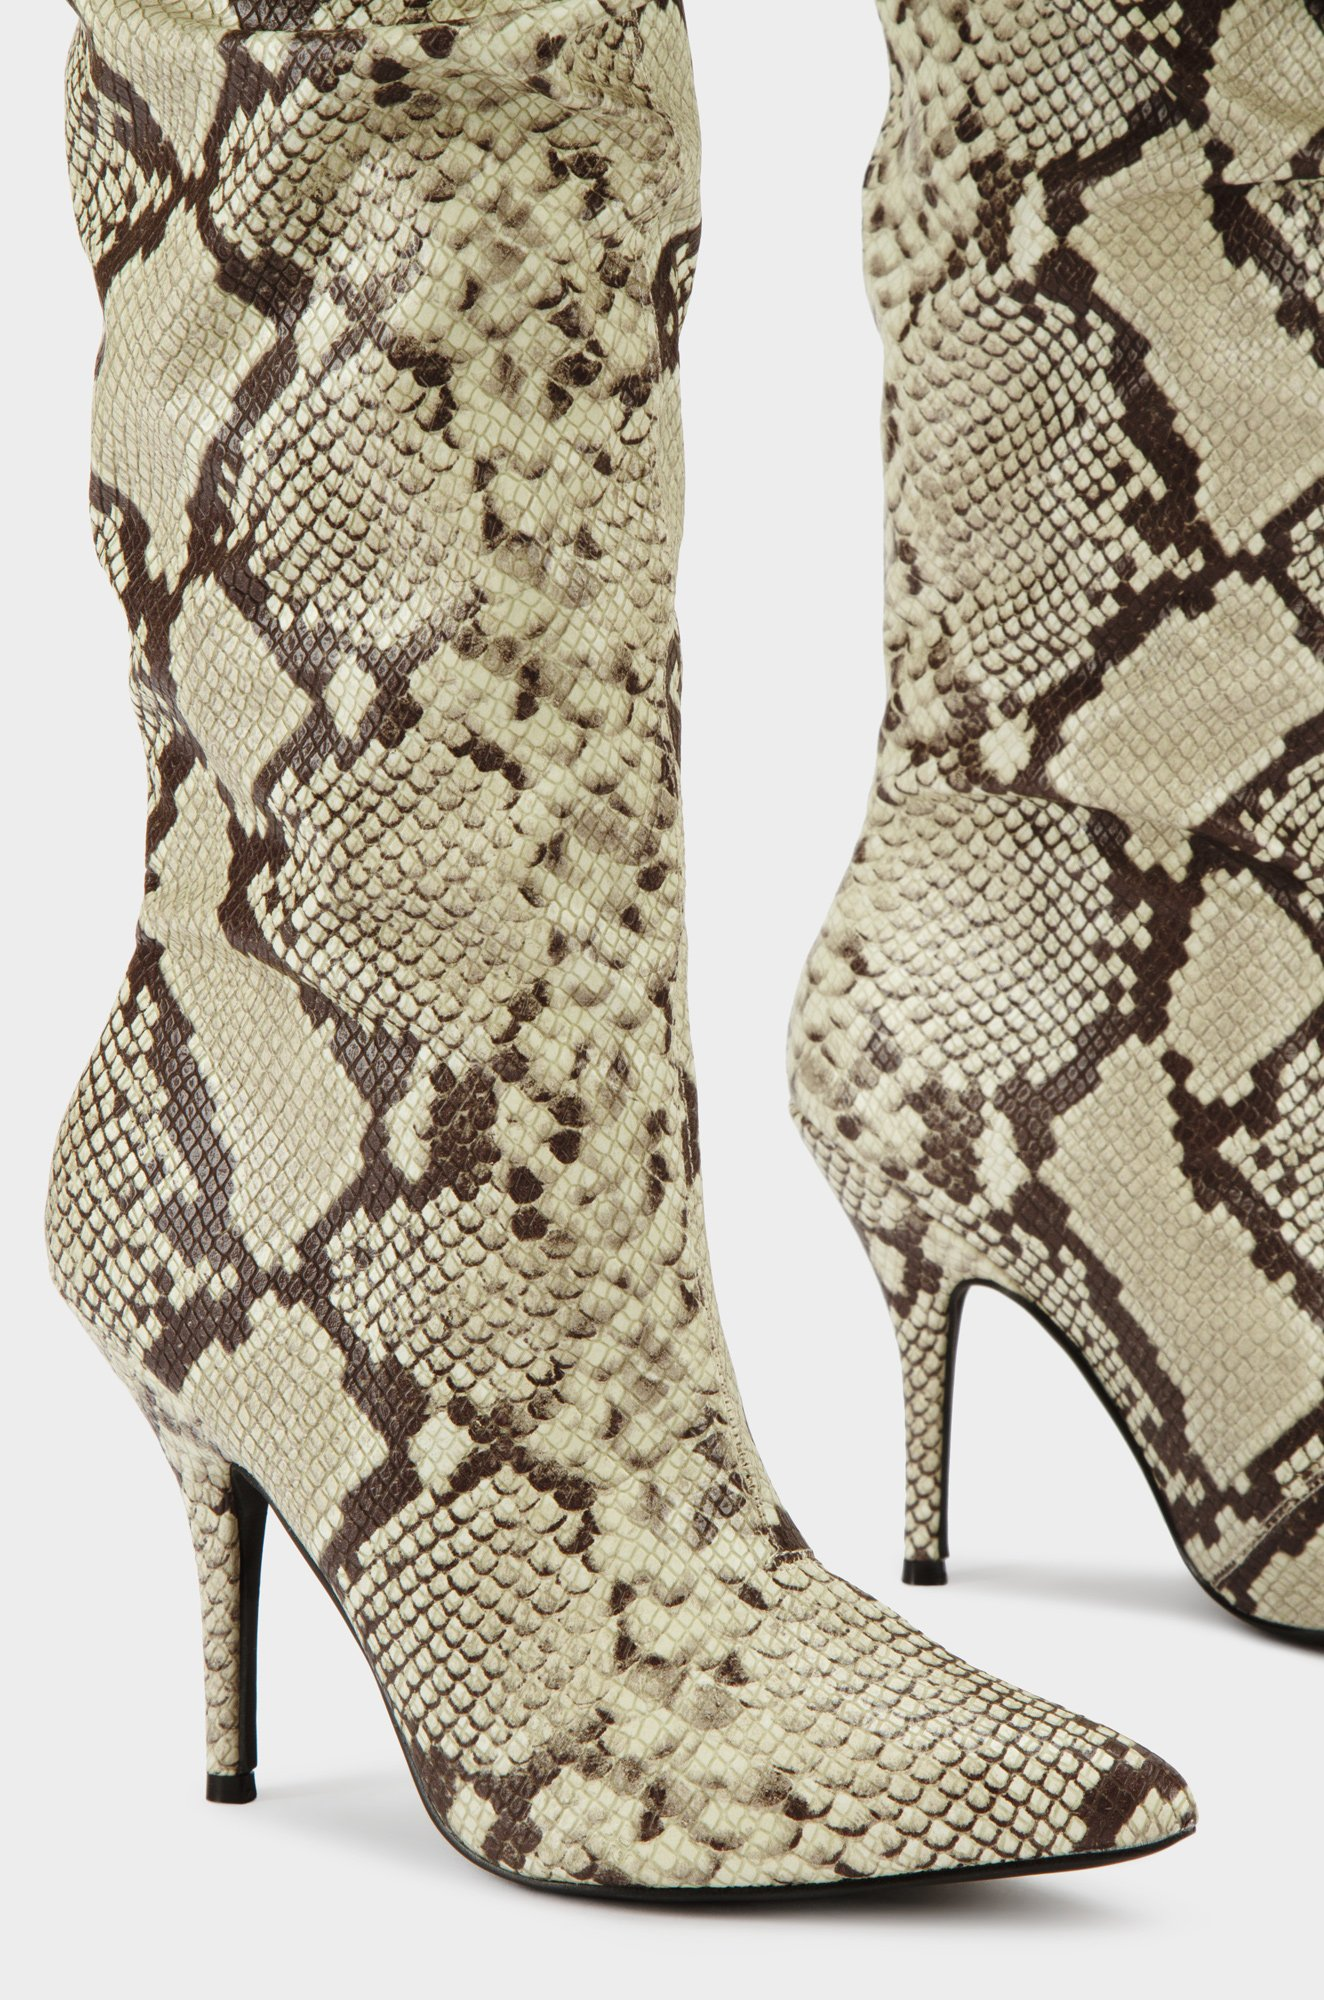 Cape-Robbin-Bown-Snake-Thigh-High-Slouch-Pointed-Toe-Over-The-Knee-Stiletto-Boot thumbnail 62